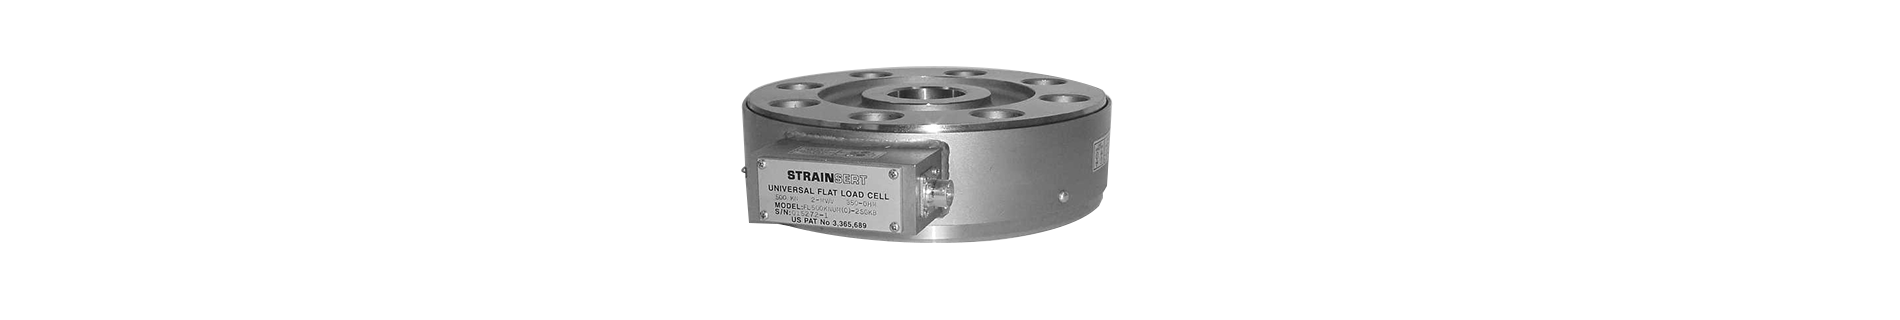 Micro Load Cell Banner